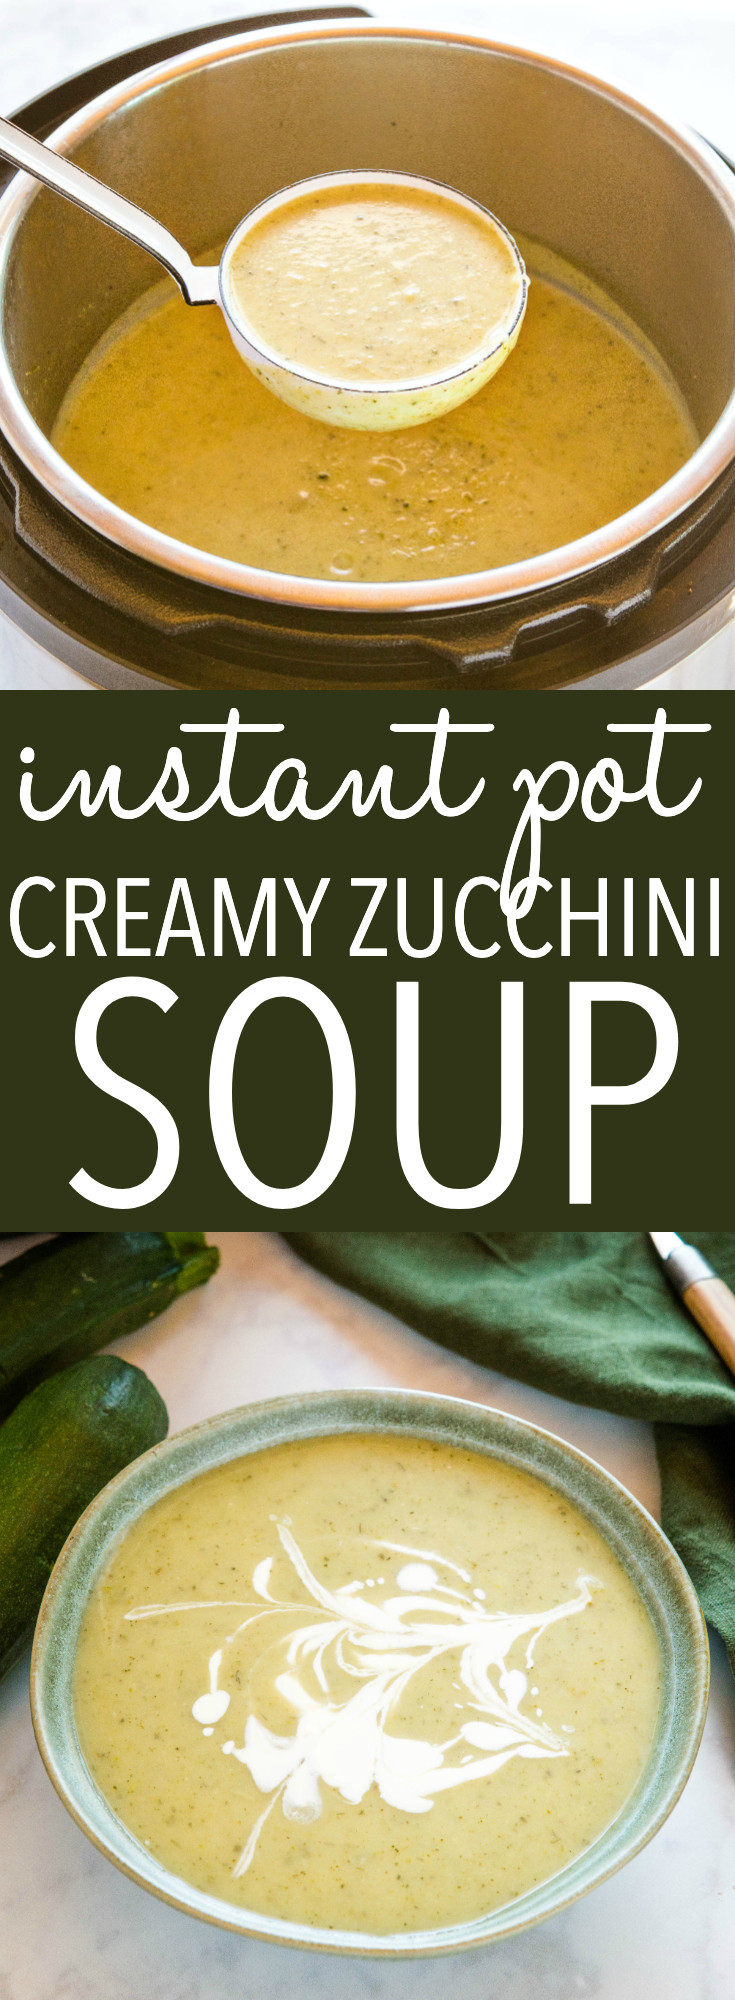 This Instant Pot Creamy Zucchini Soup is a simple vegetarian soup recipe made with fresh zucchini and herbs (with a dairy-free and vegan option)! Ready in 25 minutes! Recipe from thebusybaker.ca! #recipe #zucchini #soup #instantpot #familymeal #pressurecooker #creamy #homemade #gardening via @busybakerblog